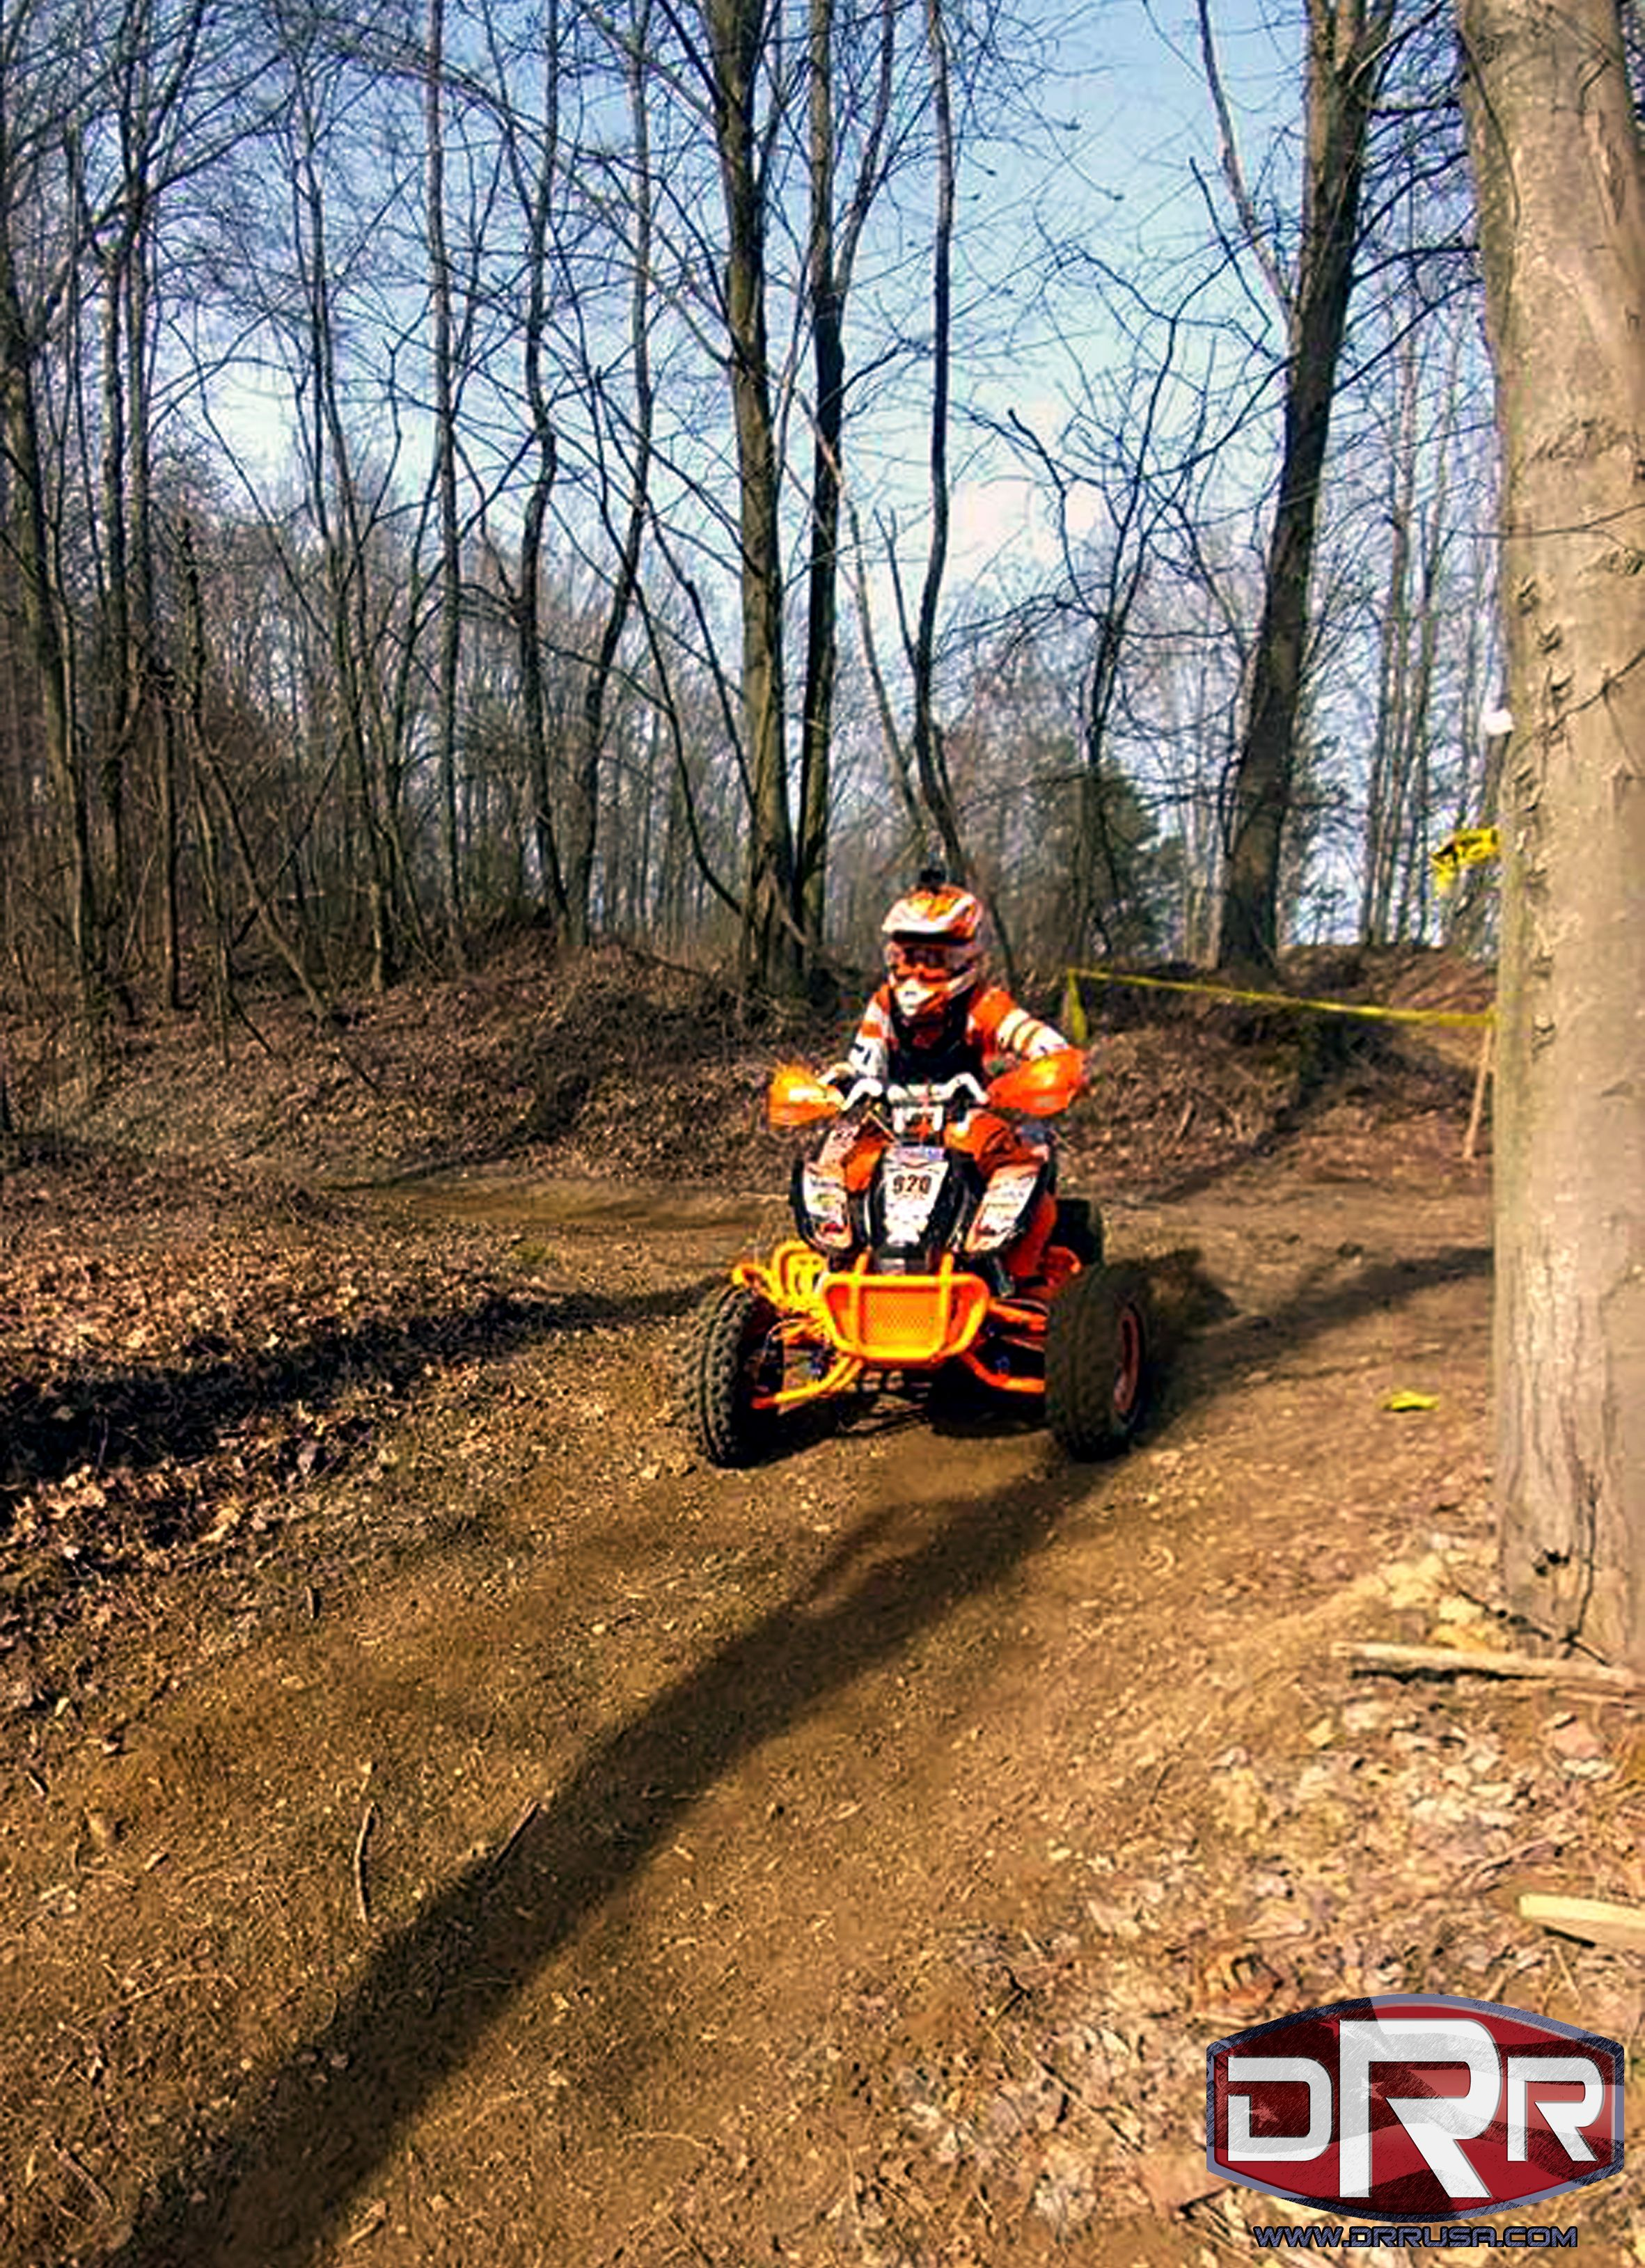 caiden hays at eroc round 1 crow canyon riding his drr drx 90cc atv mod placed 1st overall  [ 2363 x 3258 Pixel ]